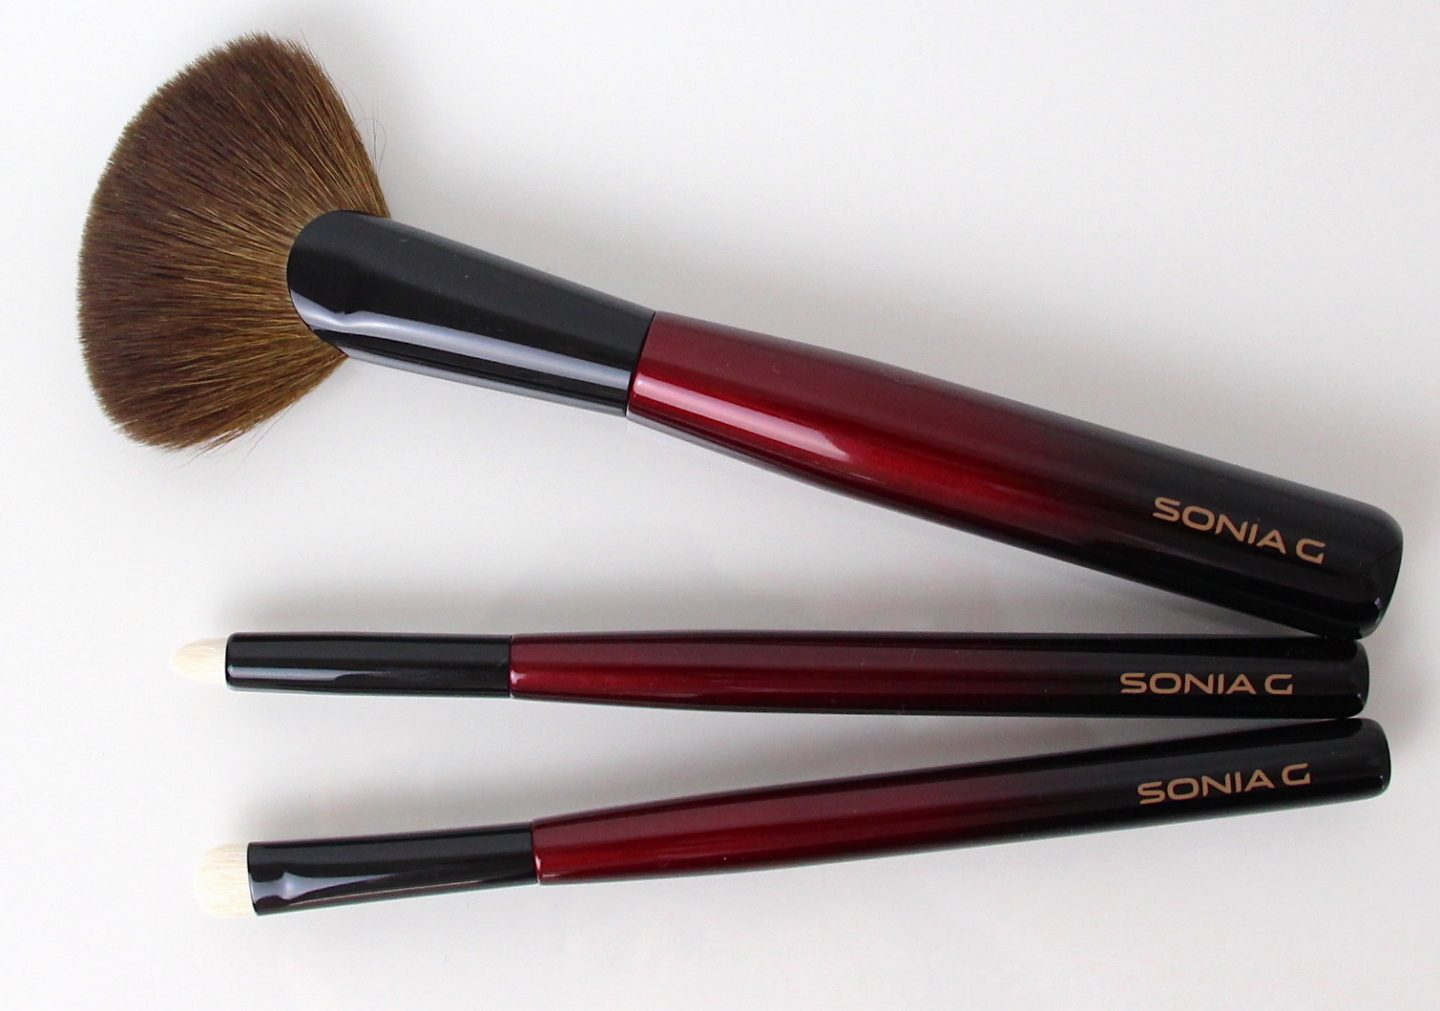 Sonia G makeup brushes: Sculpt Two (new), Pencil One (new) and smudger one (new)